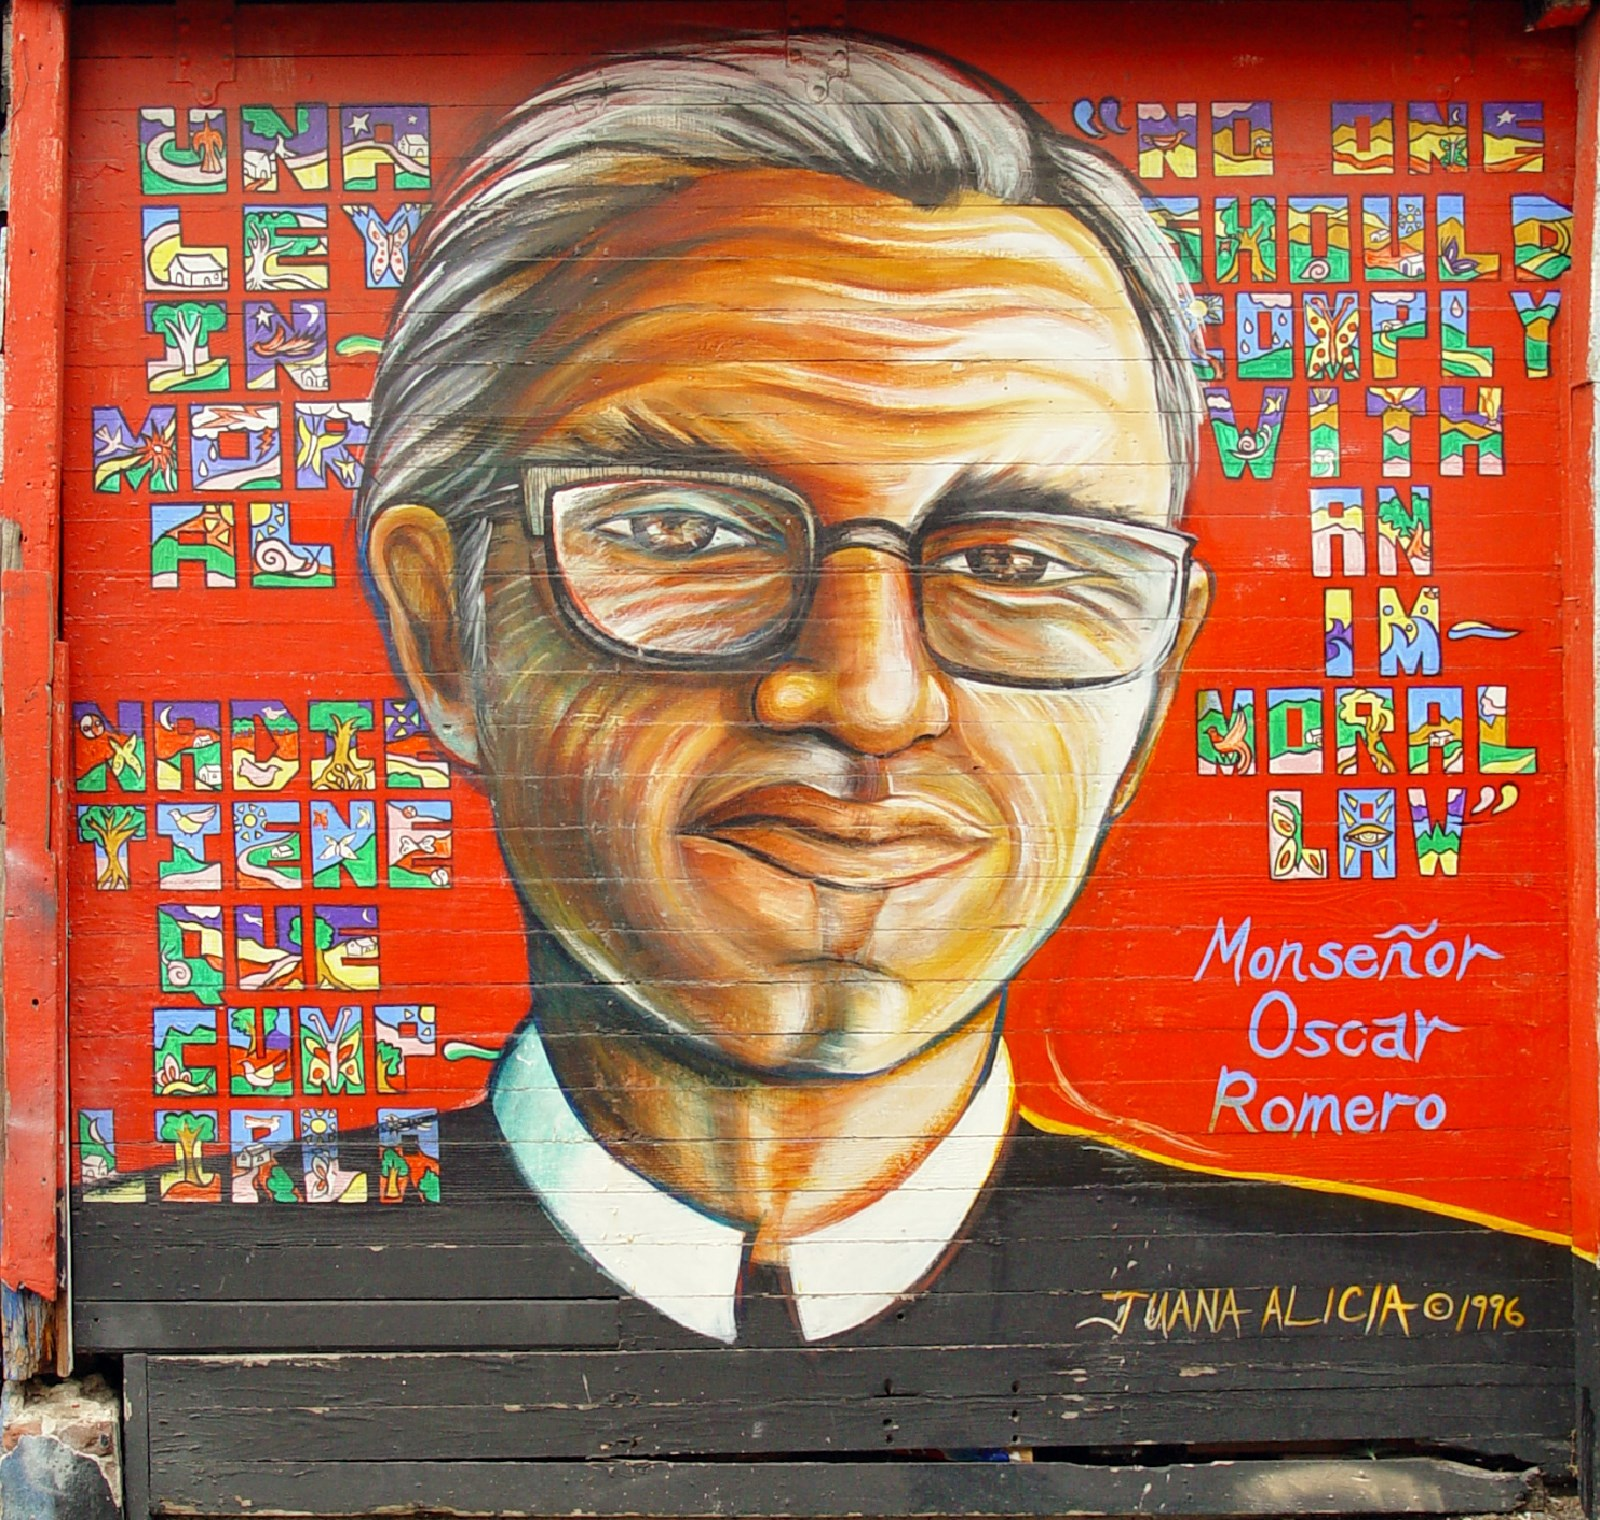 00 Juana Alicia. Monsenor Oscar Romero. 1996